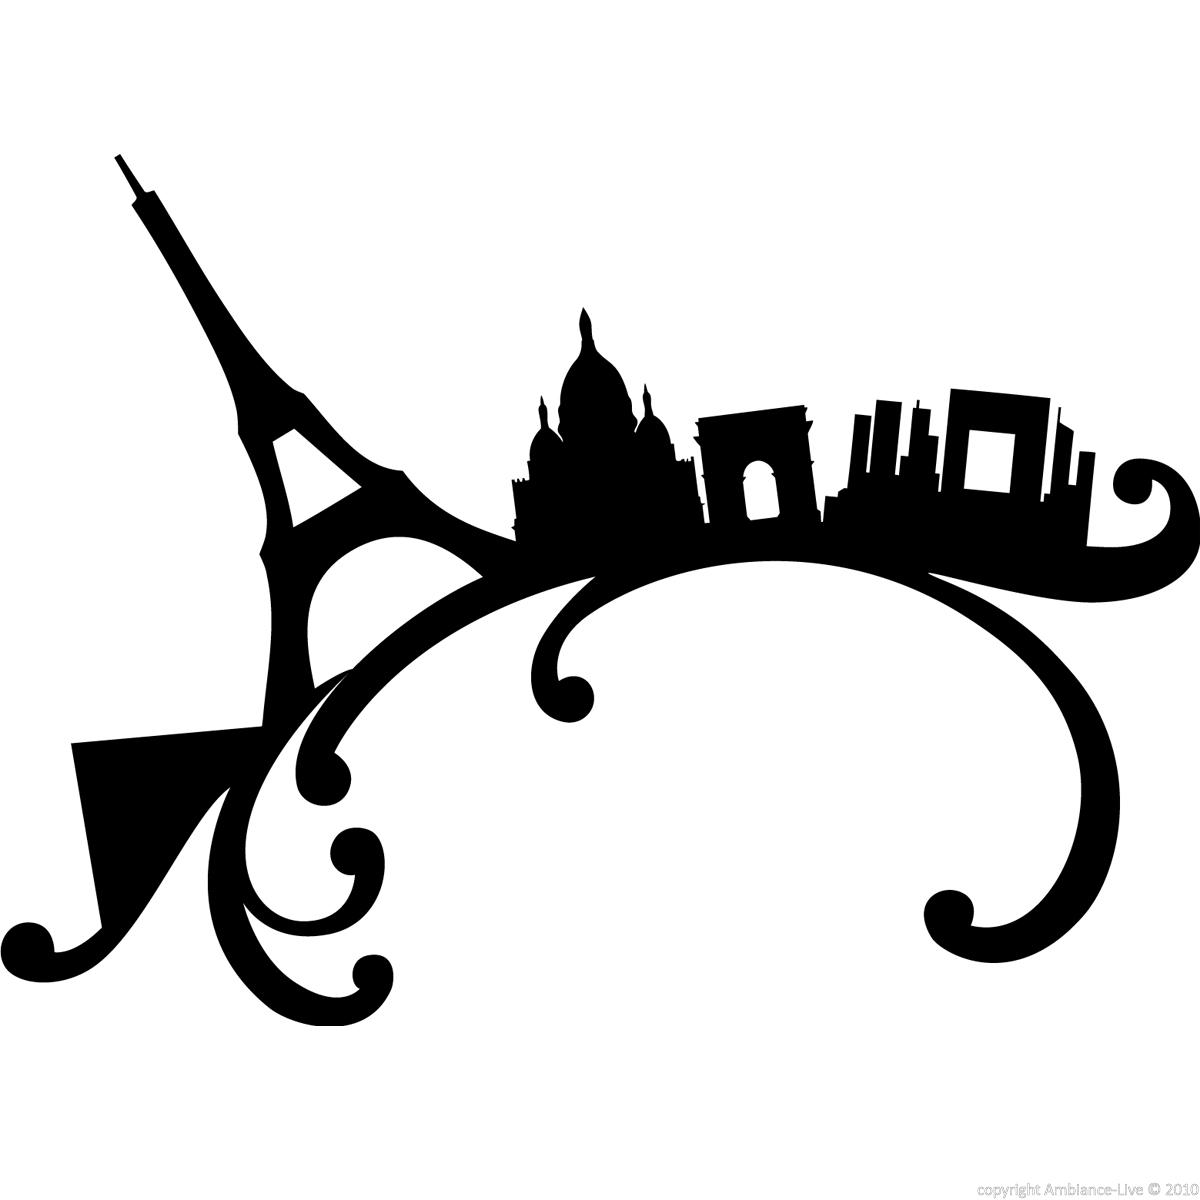 Stickers muraux paris sticker paris sur une vague ambiance - Stickers muraux paris ...